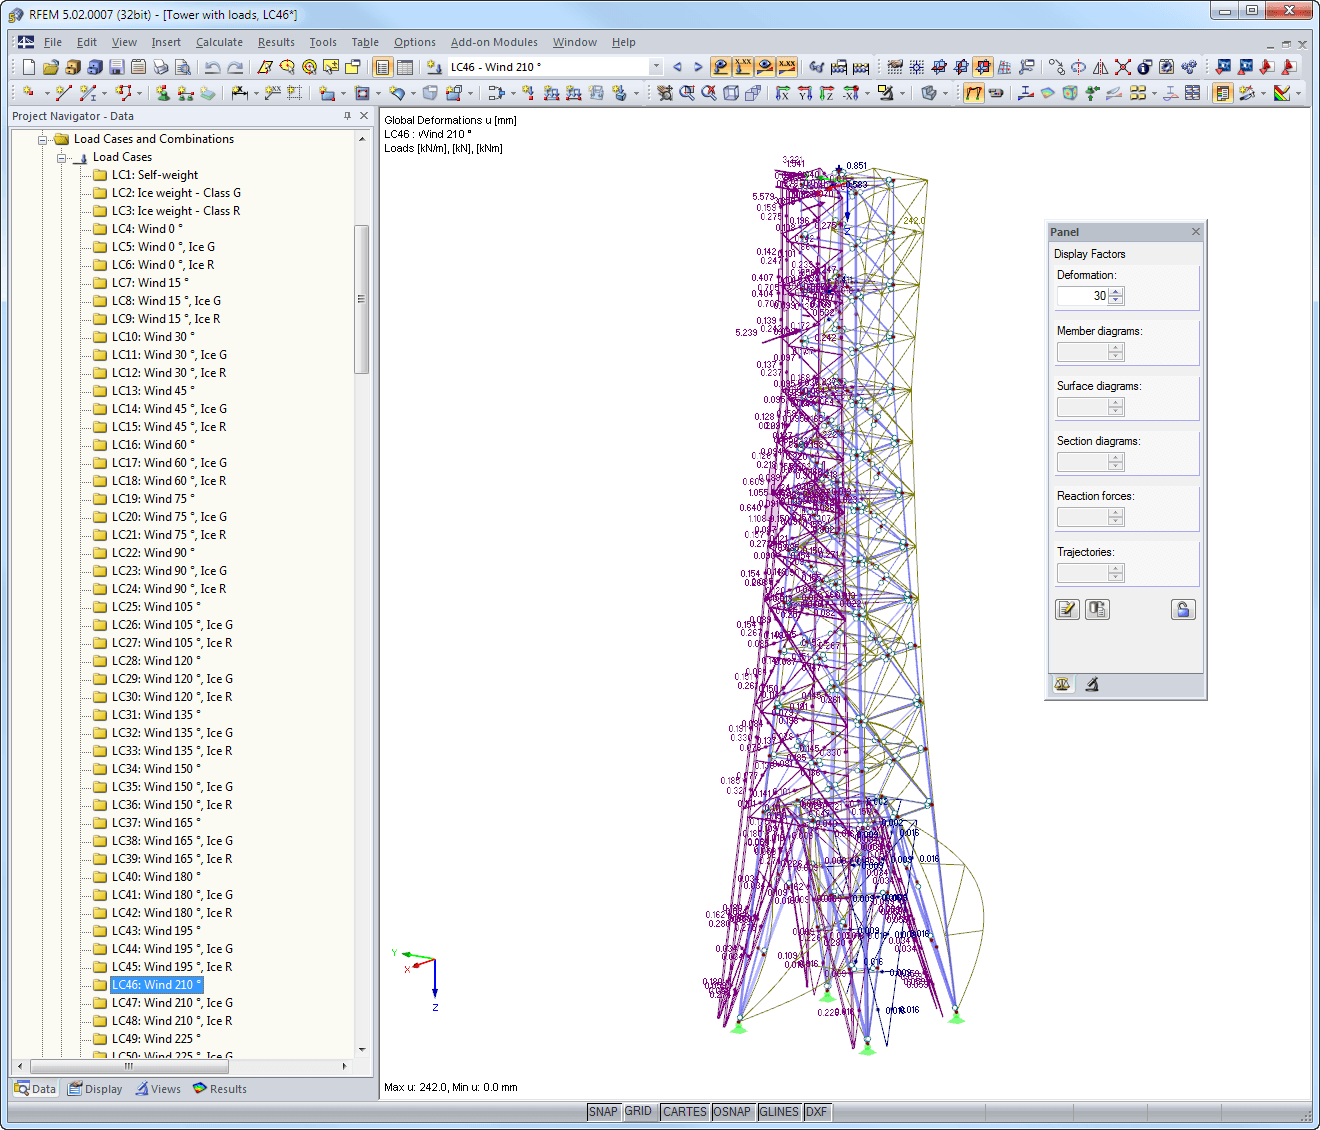 Loads and global deformation in RFEM